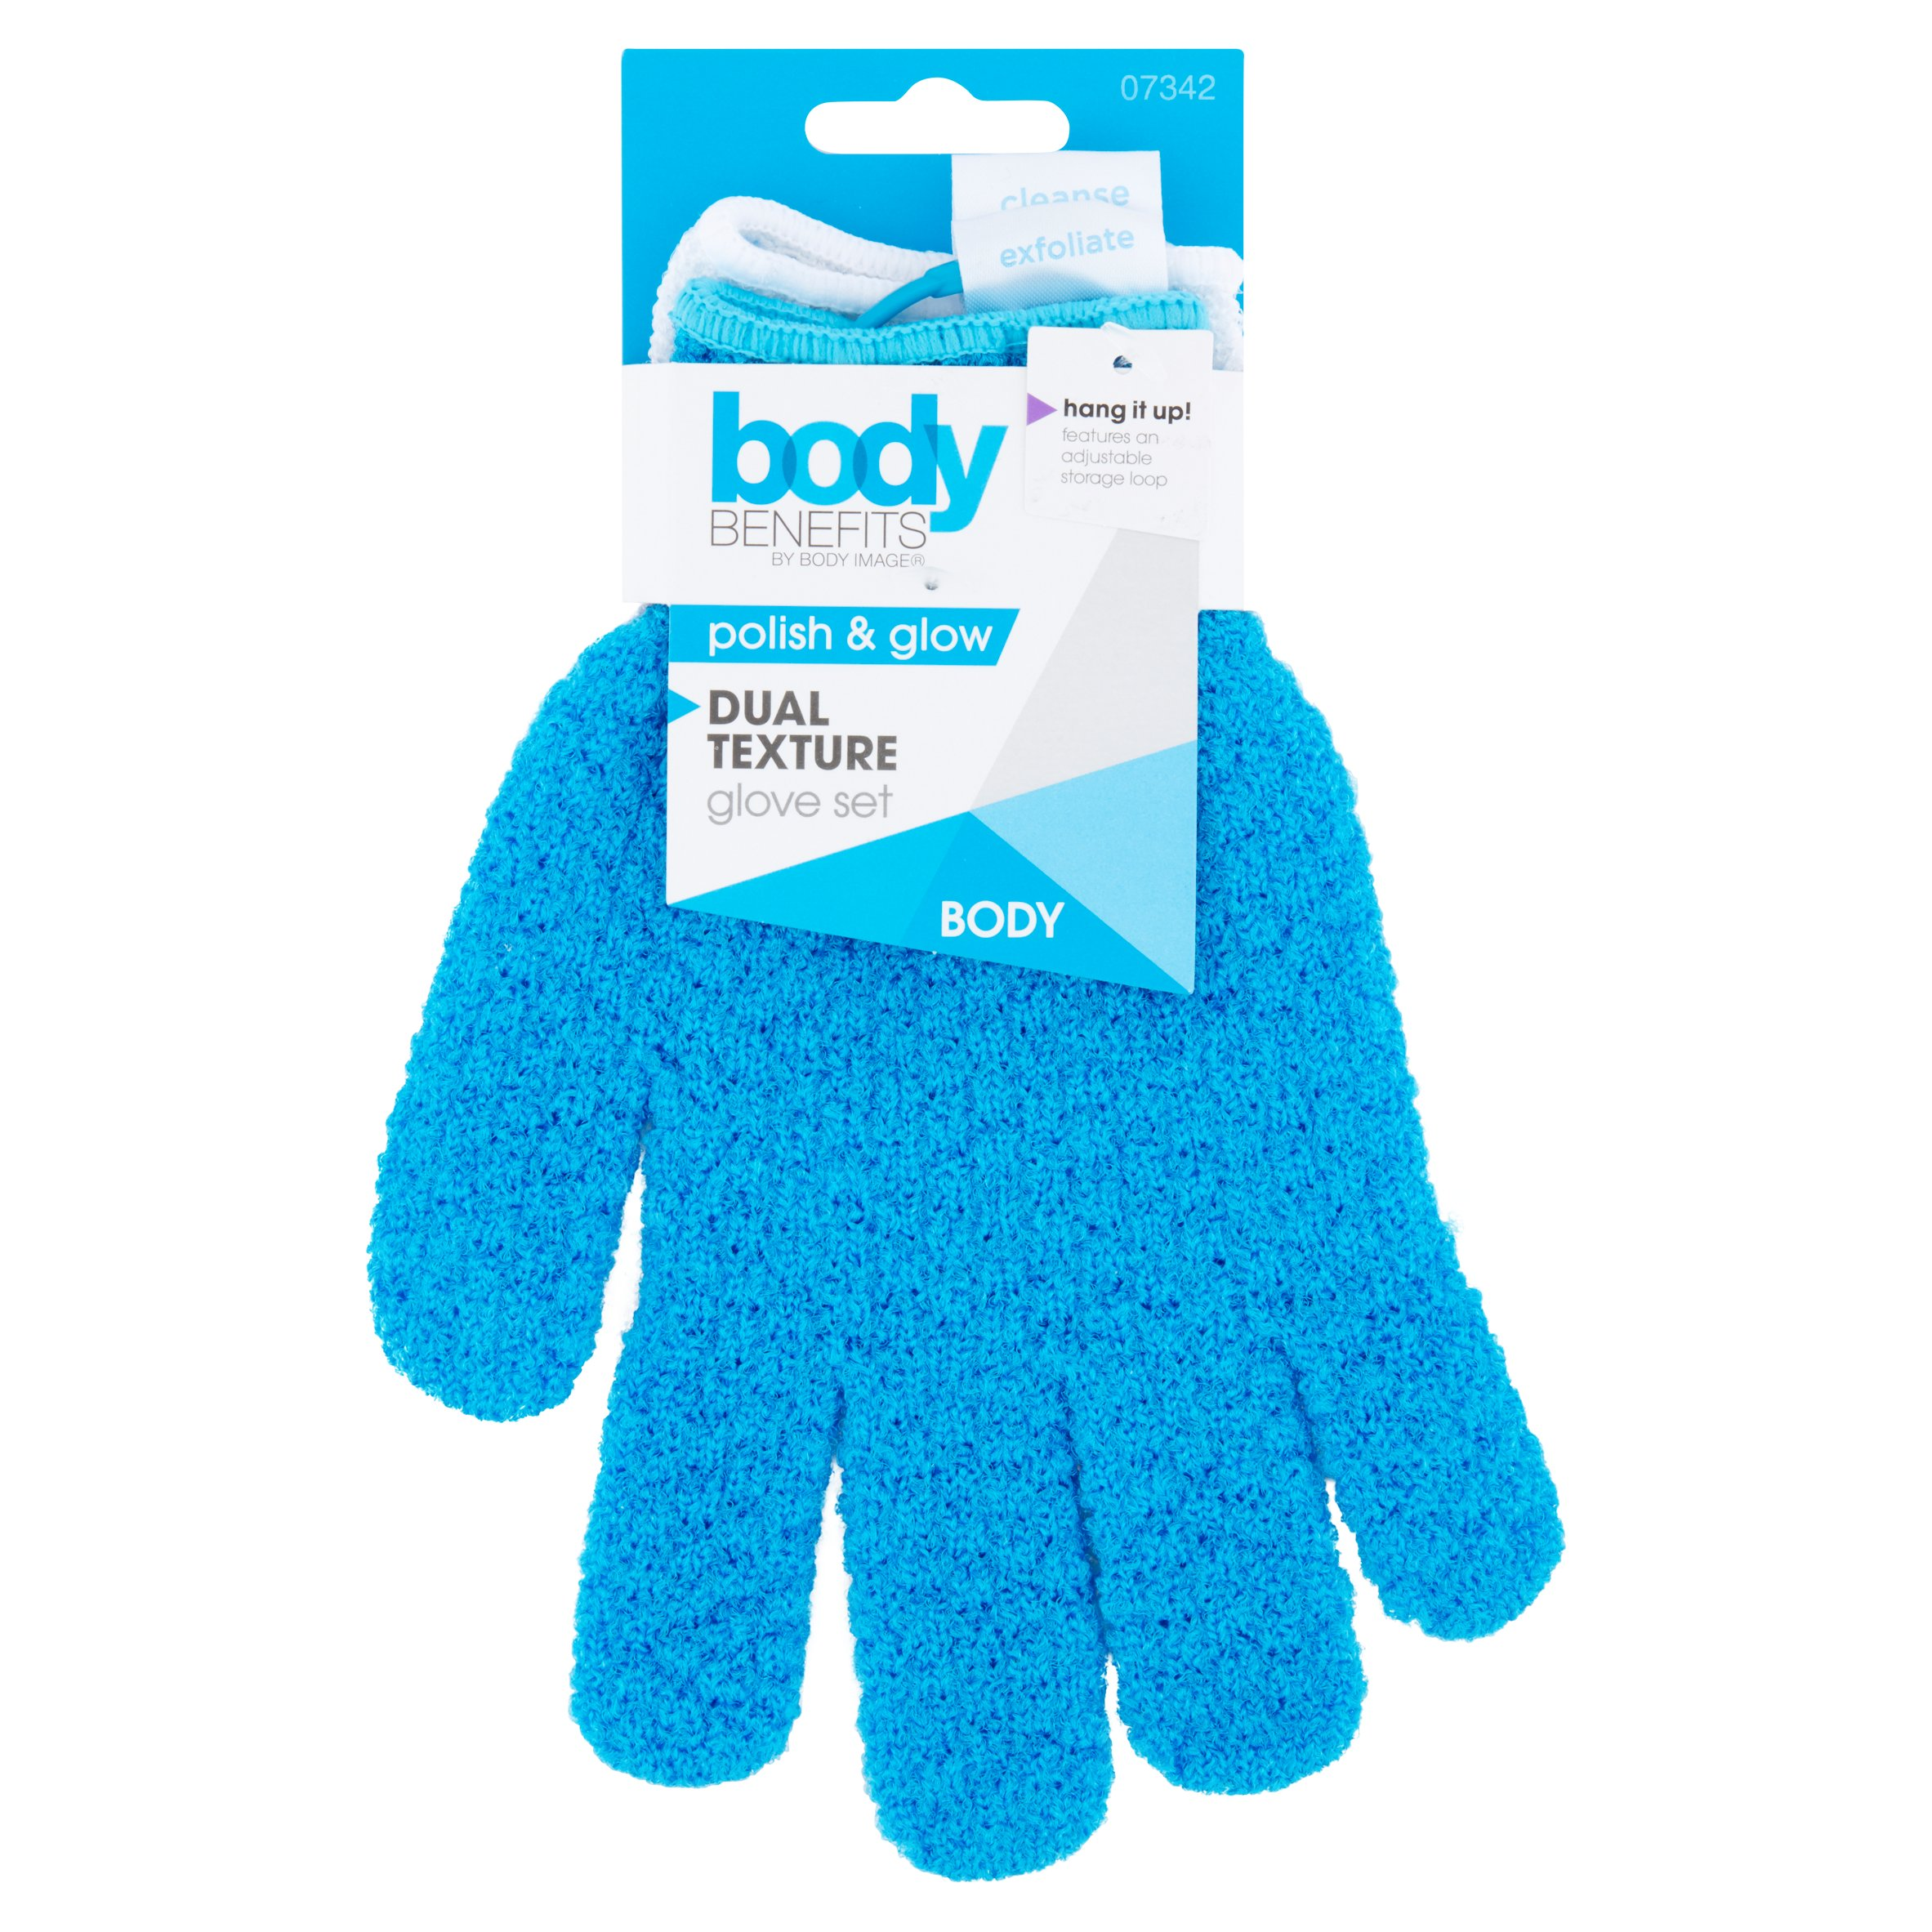 Body Benefits by Body Image Dual Texture Body Glove Set